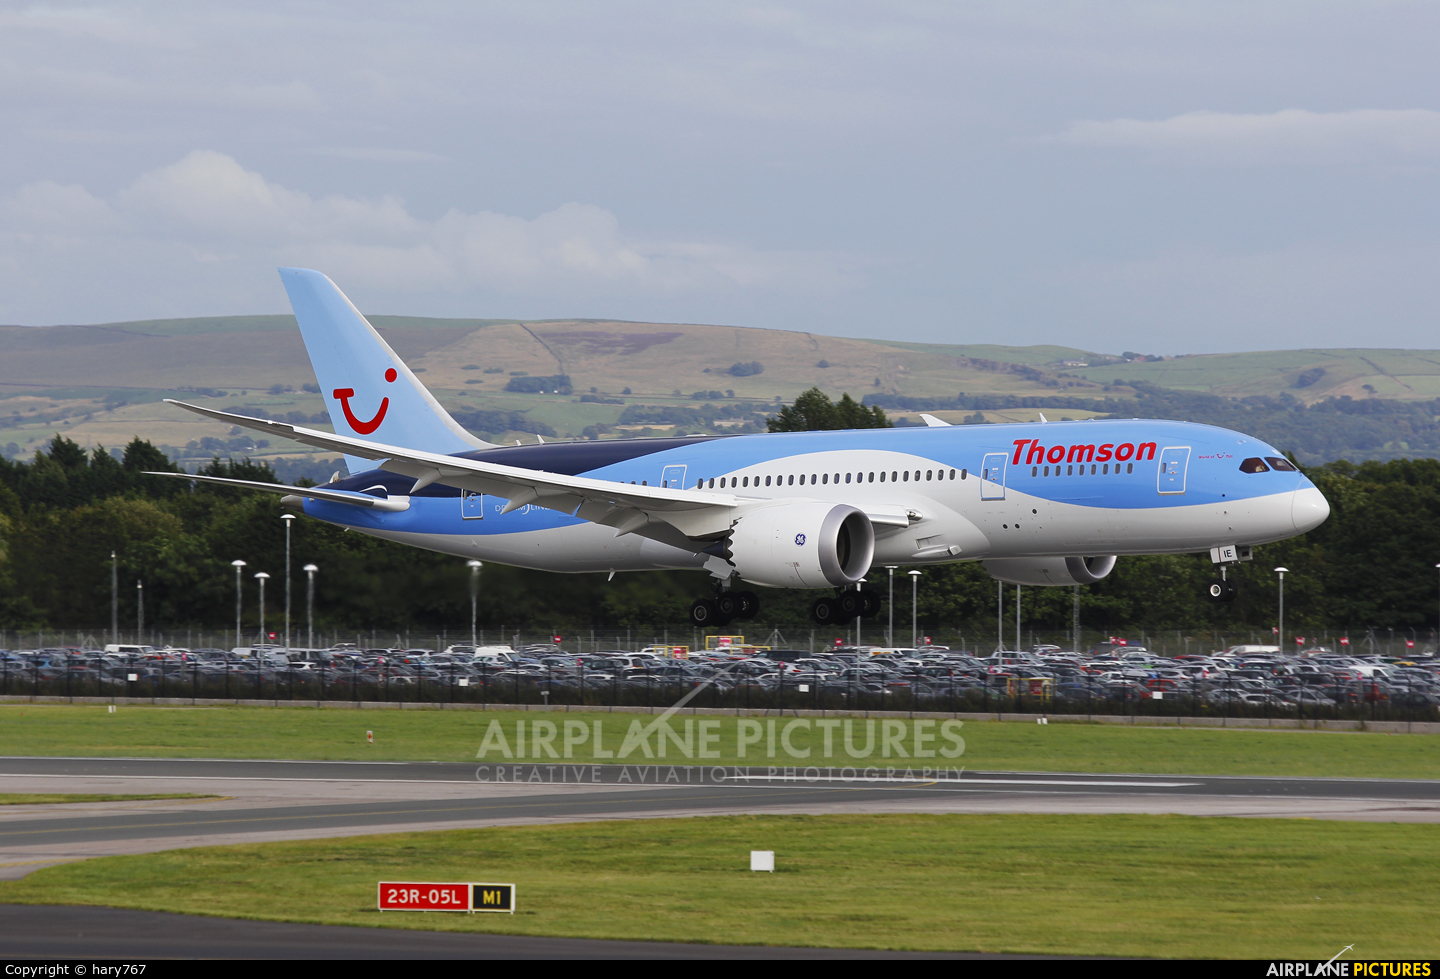 Thomson/Thomsonfly G-TUIE aircraft at Manchester